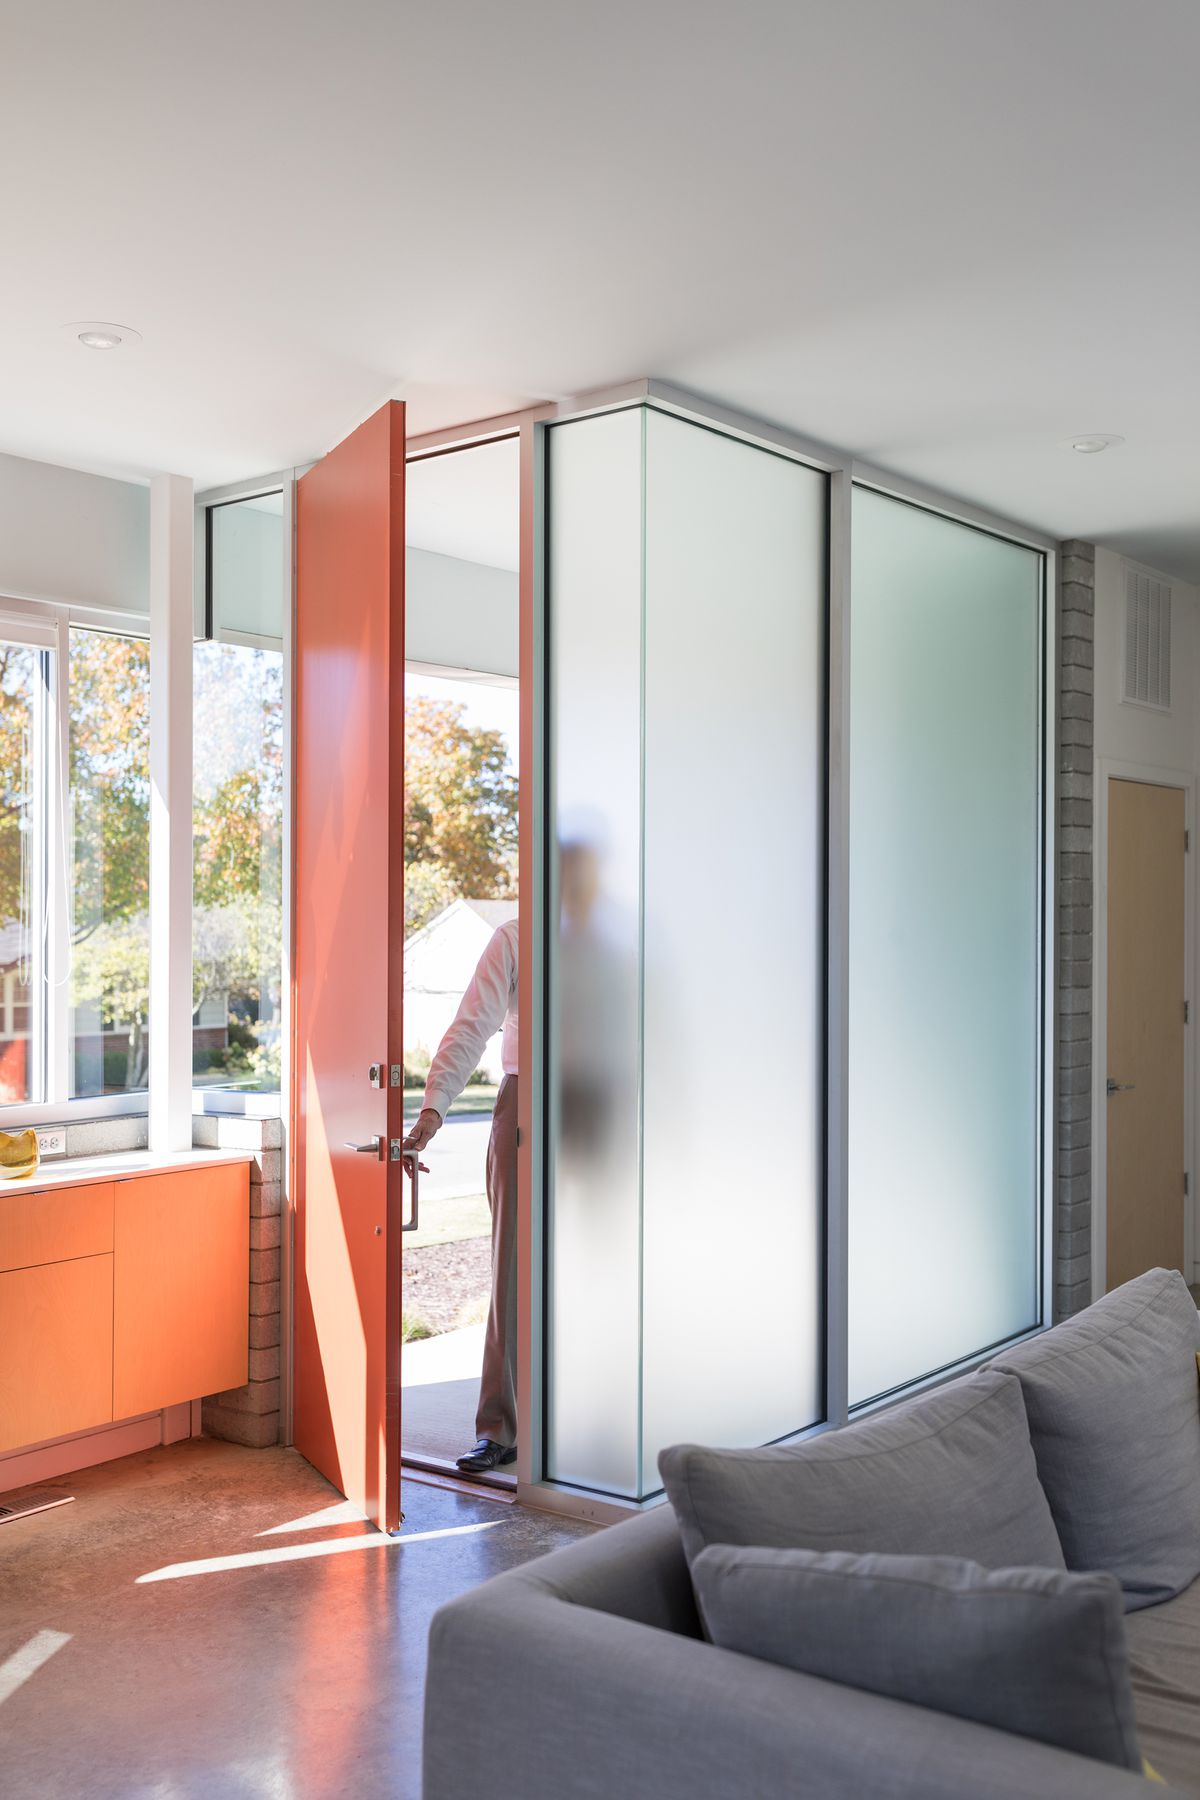 An orange door marks the entry of this modern house with large glass windows and doors